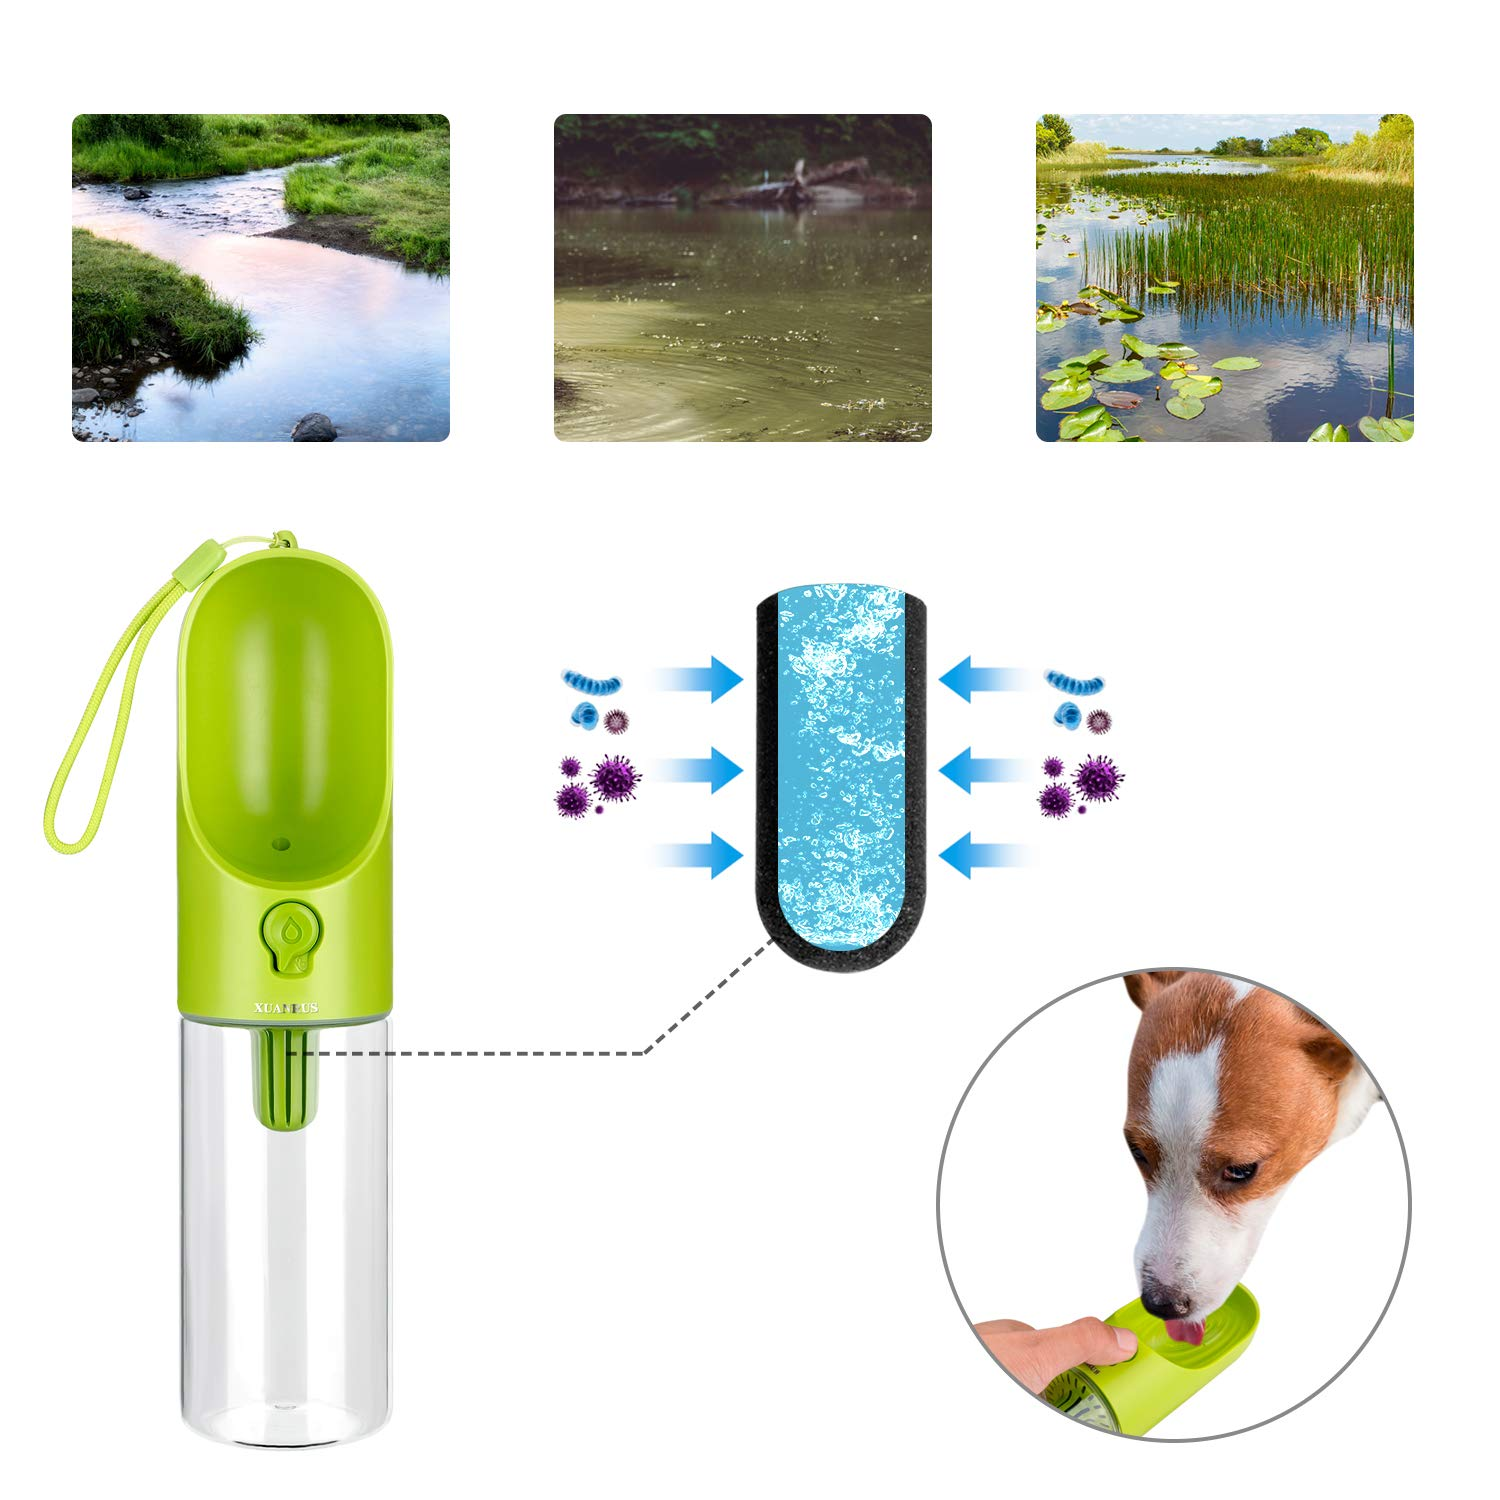 Dog Water Bottle for Walking, Pet Water Dispenser Fashion Antibacterial Portable Dog Cat Travel Water Drink Bottle Bowl Dispenser Feeder Including 2 Filter Elements, Dogs Outdoor Drinking Cup-400ml